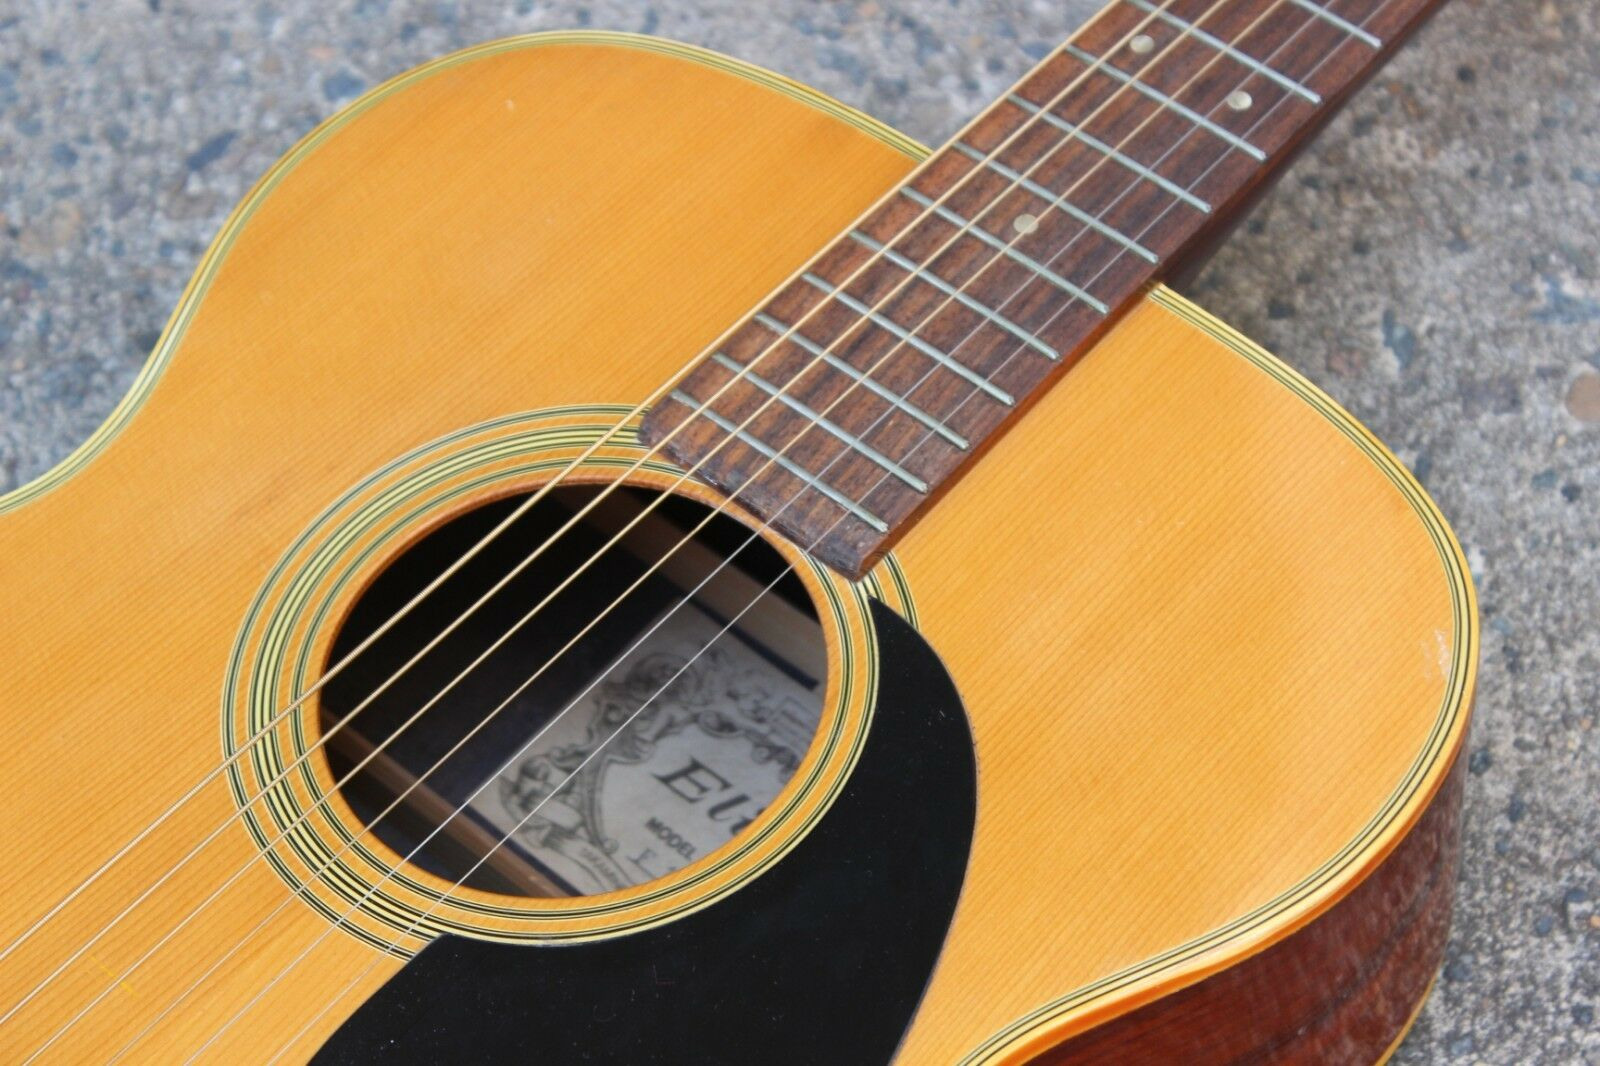 1973 Takamine Elite F-170 Parlor Acoustic Guitar (Made in Japan)